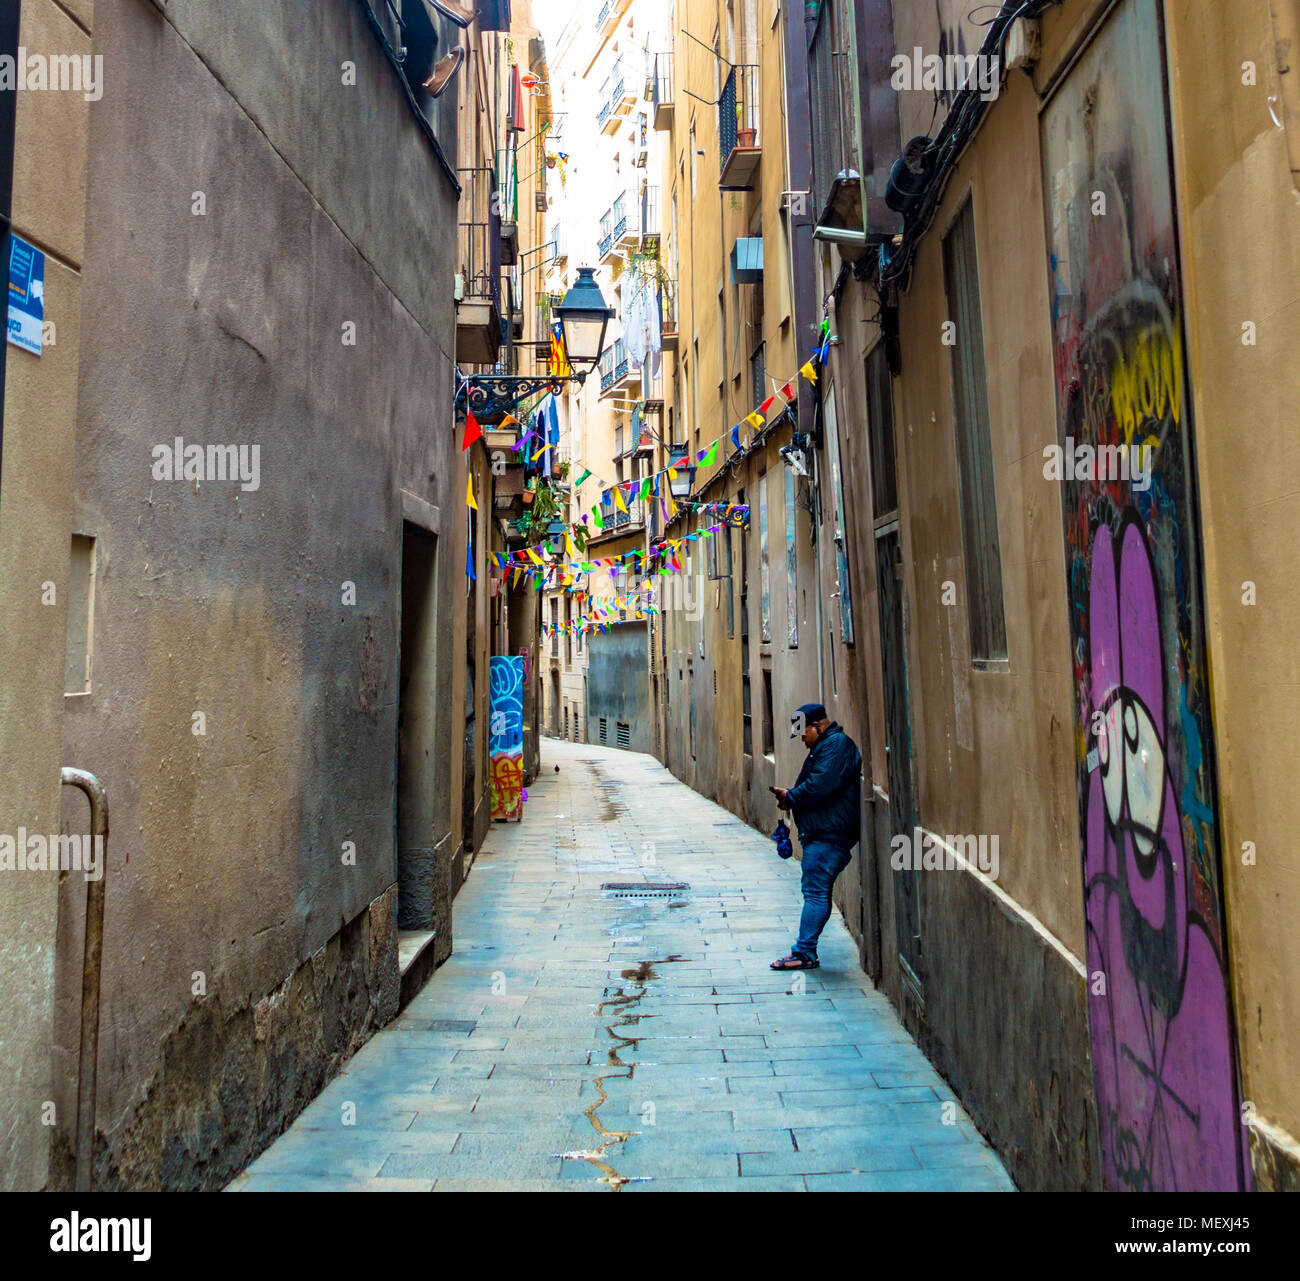 a-man-leans-against-a-wall-down-a-narrow-road-in-the-gothic-quarter-of-barcelona-to-check-his-mobile-phone-MEXJ45.jpg